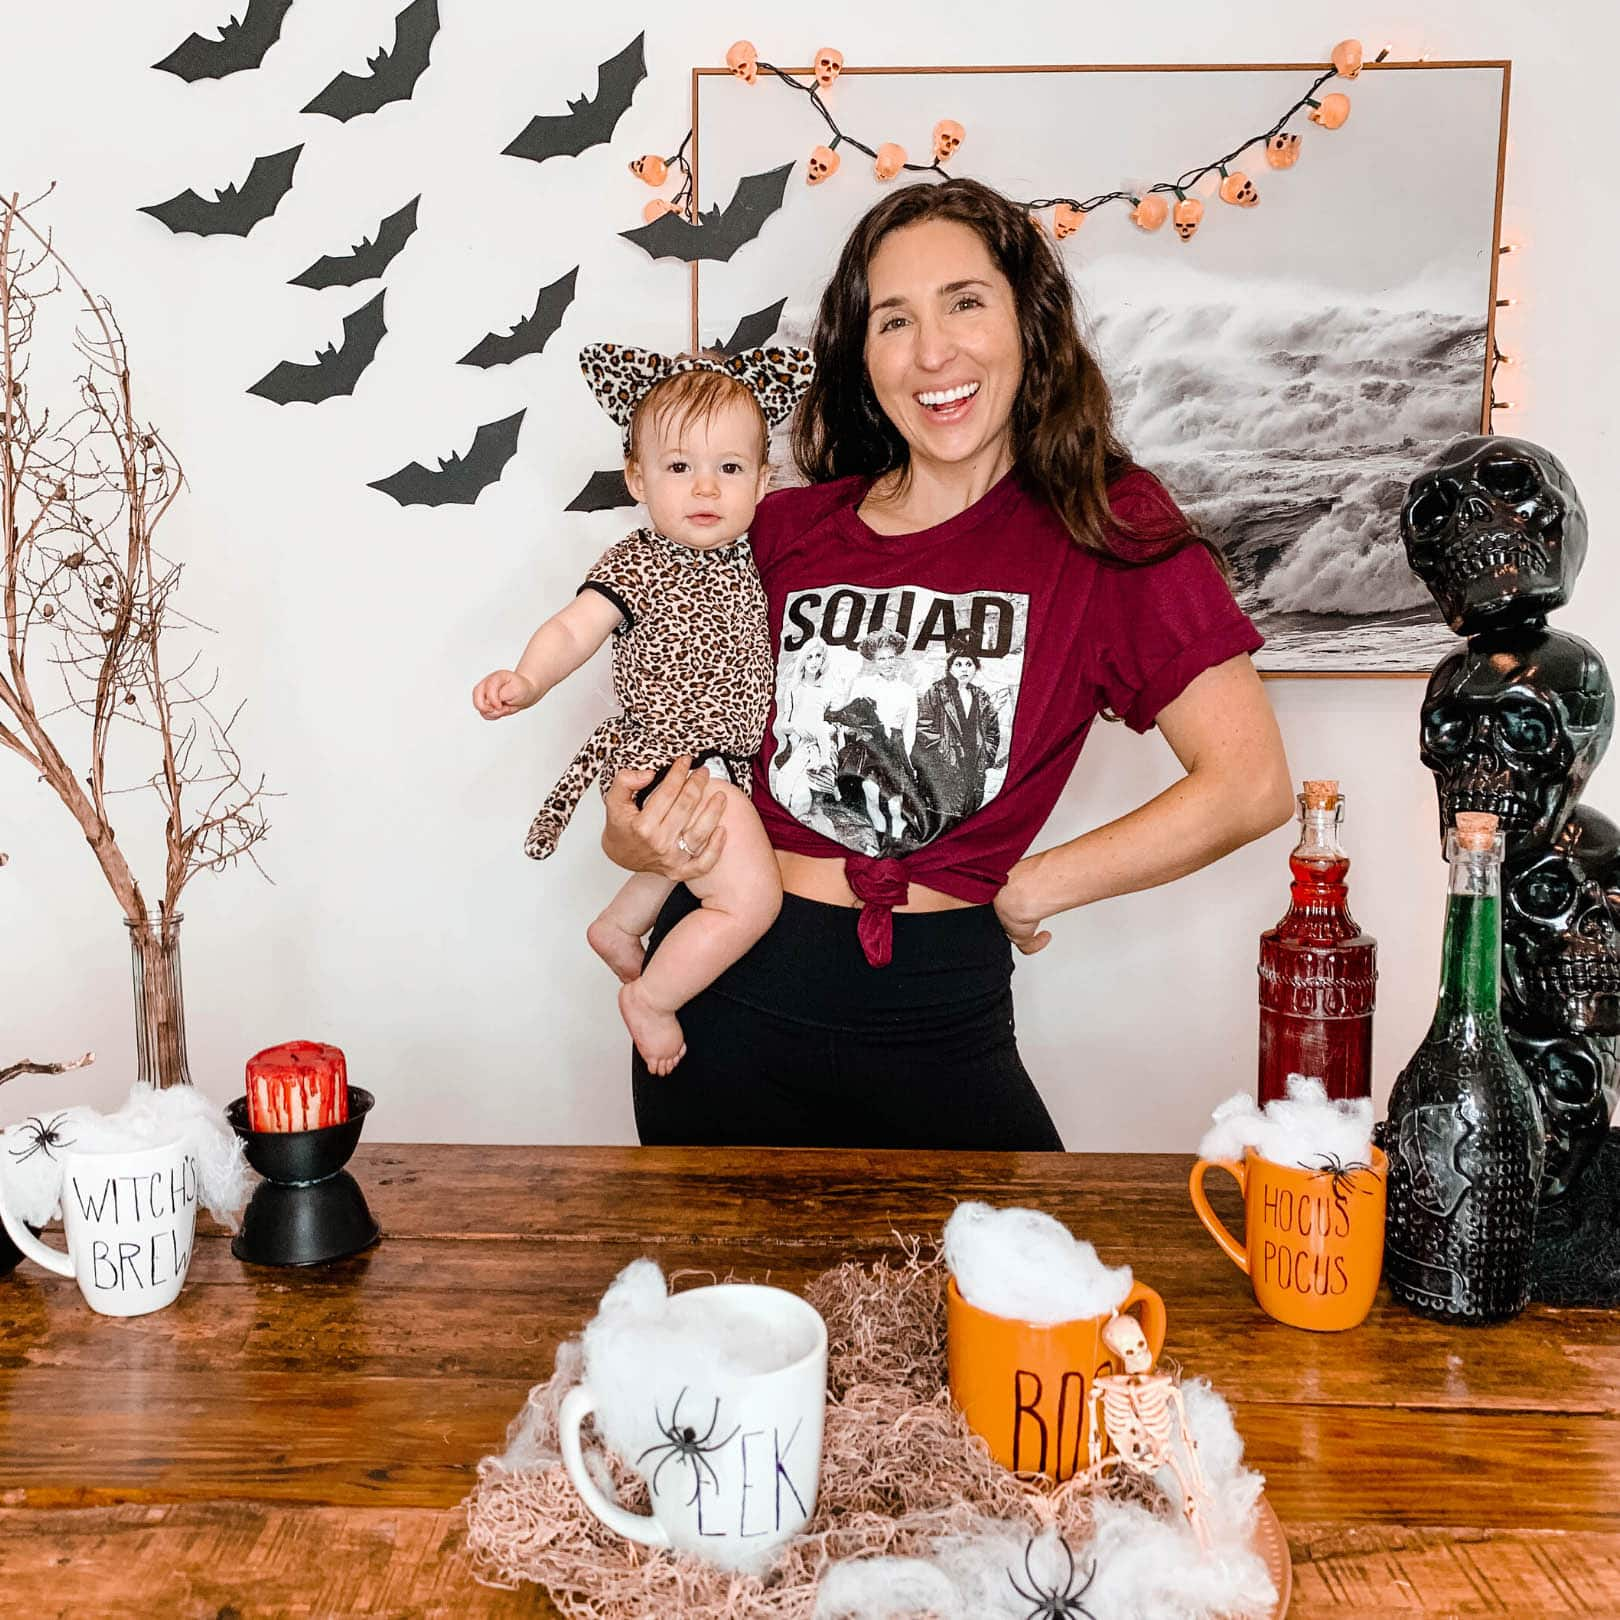 7 Easy Dollar Tree Halloween Decoration DIY Ideas You Need To Try This Year, how to make scary simple dollar store halloween decorations for haunted houses, center pieces, kids, a party, or an apartment, videos for halloween decorations like making your own apothecary jars, bloody candlesticks in candle holders, make paper bats for beautiful halloween effect, skull tower for front porch, skeleton skull garland using christmas lights, #dollarstore, #dollartree, #halloweendecor, #halloweendiy, #halloweendecorations, #budgethalloween, #halloweencrafts, easy halloween crafts for families